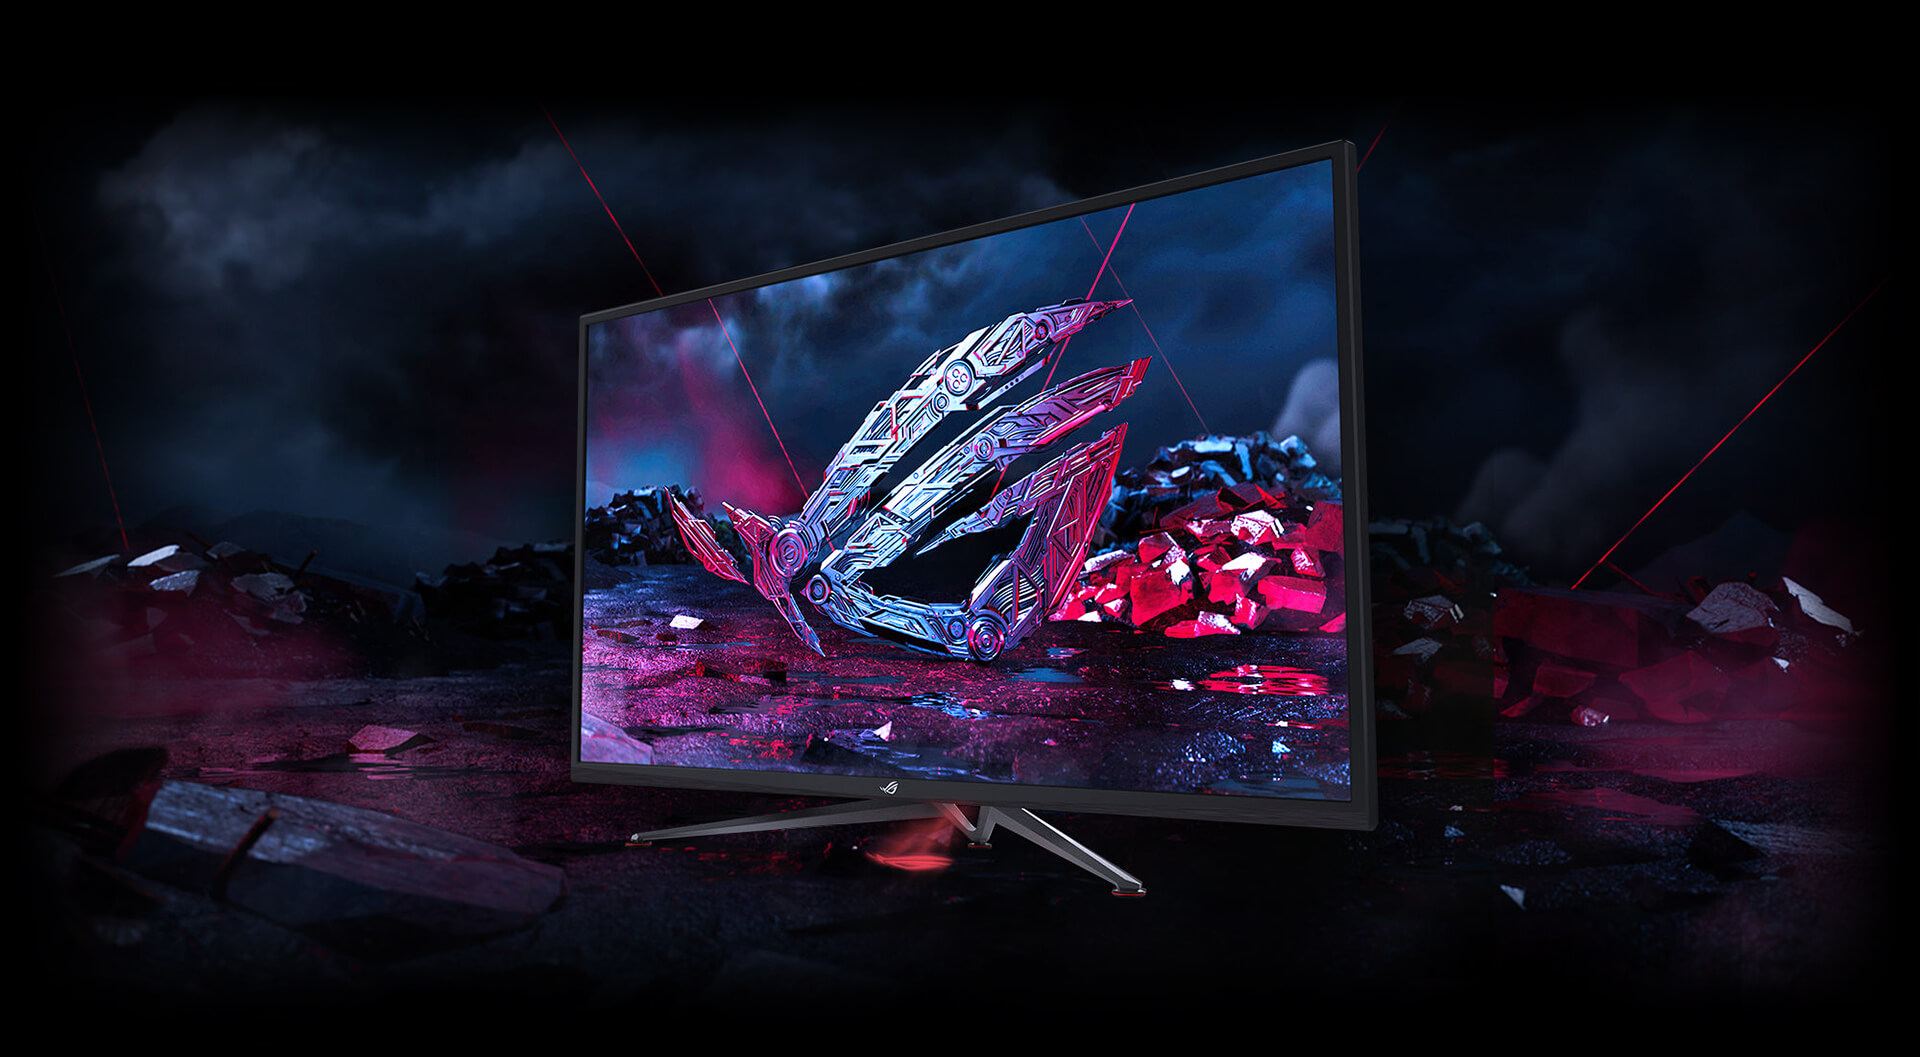 ASUS ROG Strix XG438Q Launching This Month for £1099 - 43